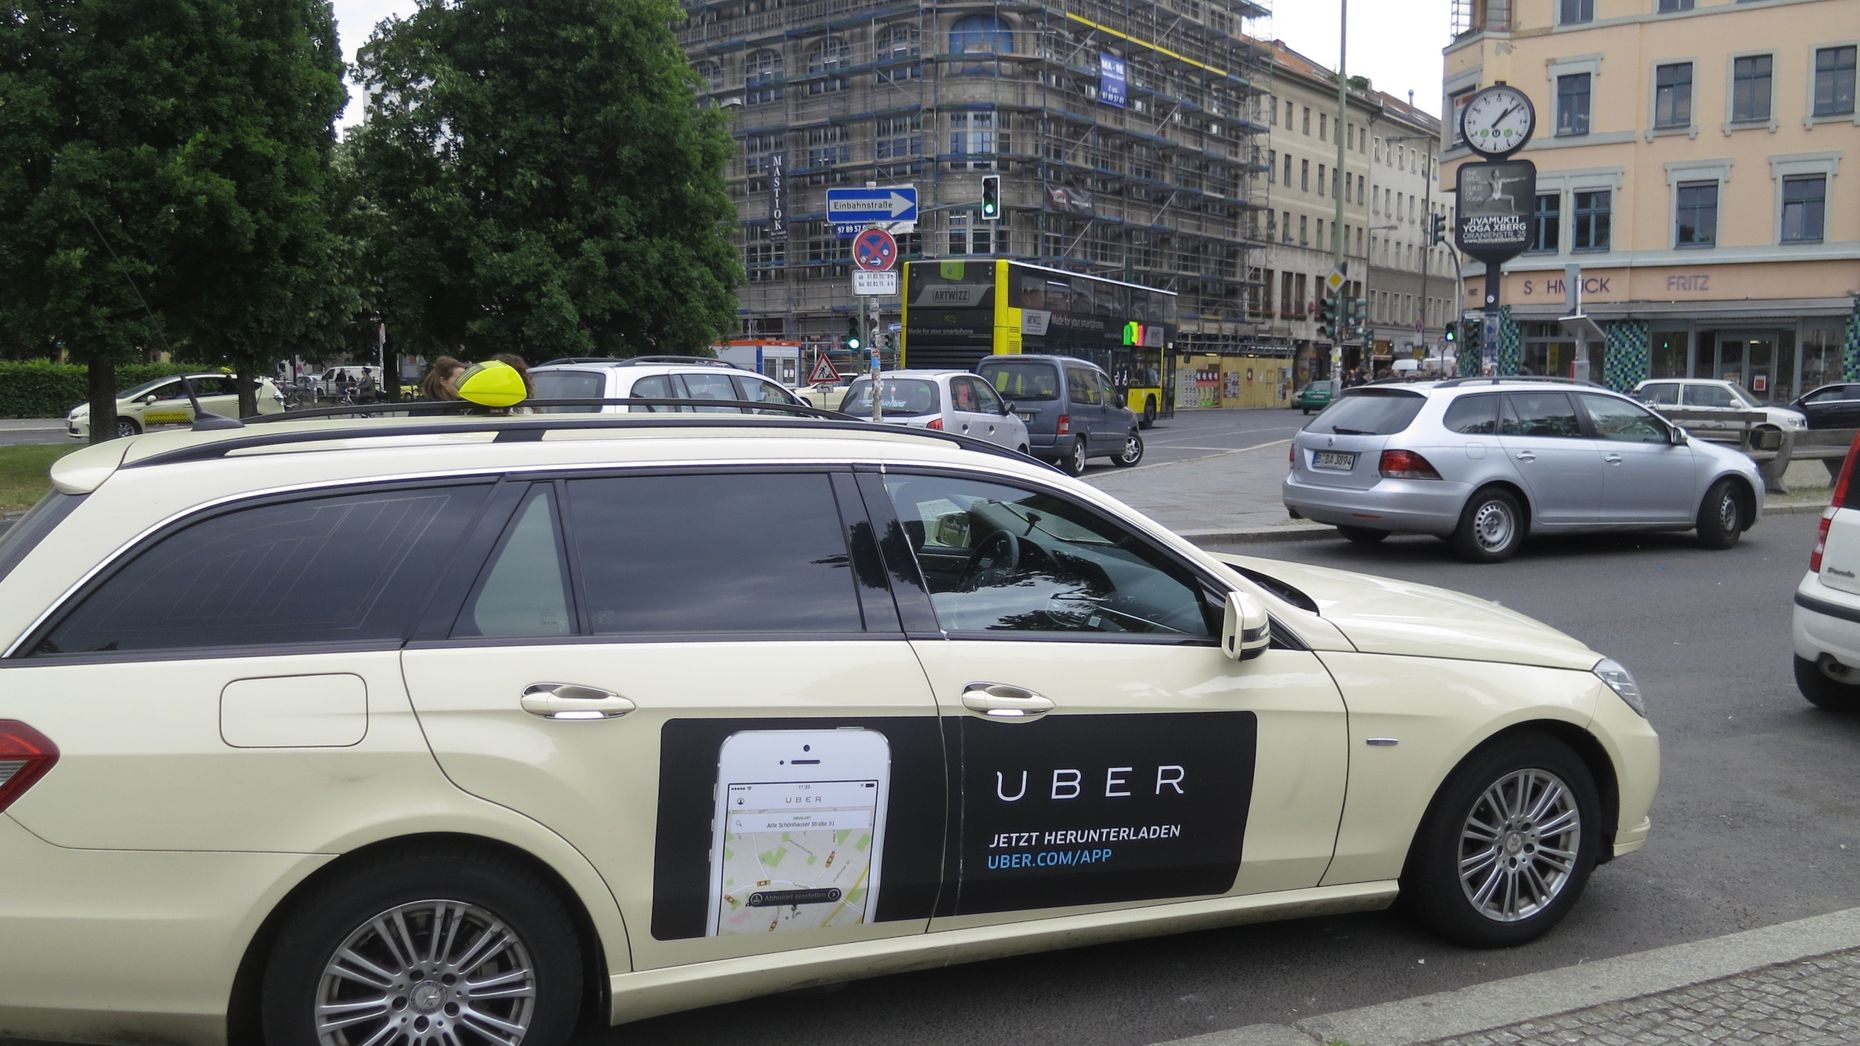 An Uber ad on a taxi. Photo by Flickr/Alper Cugun.